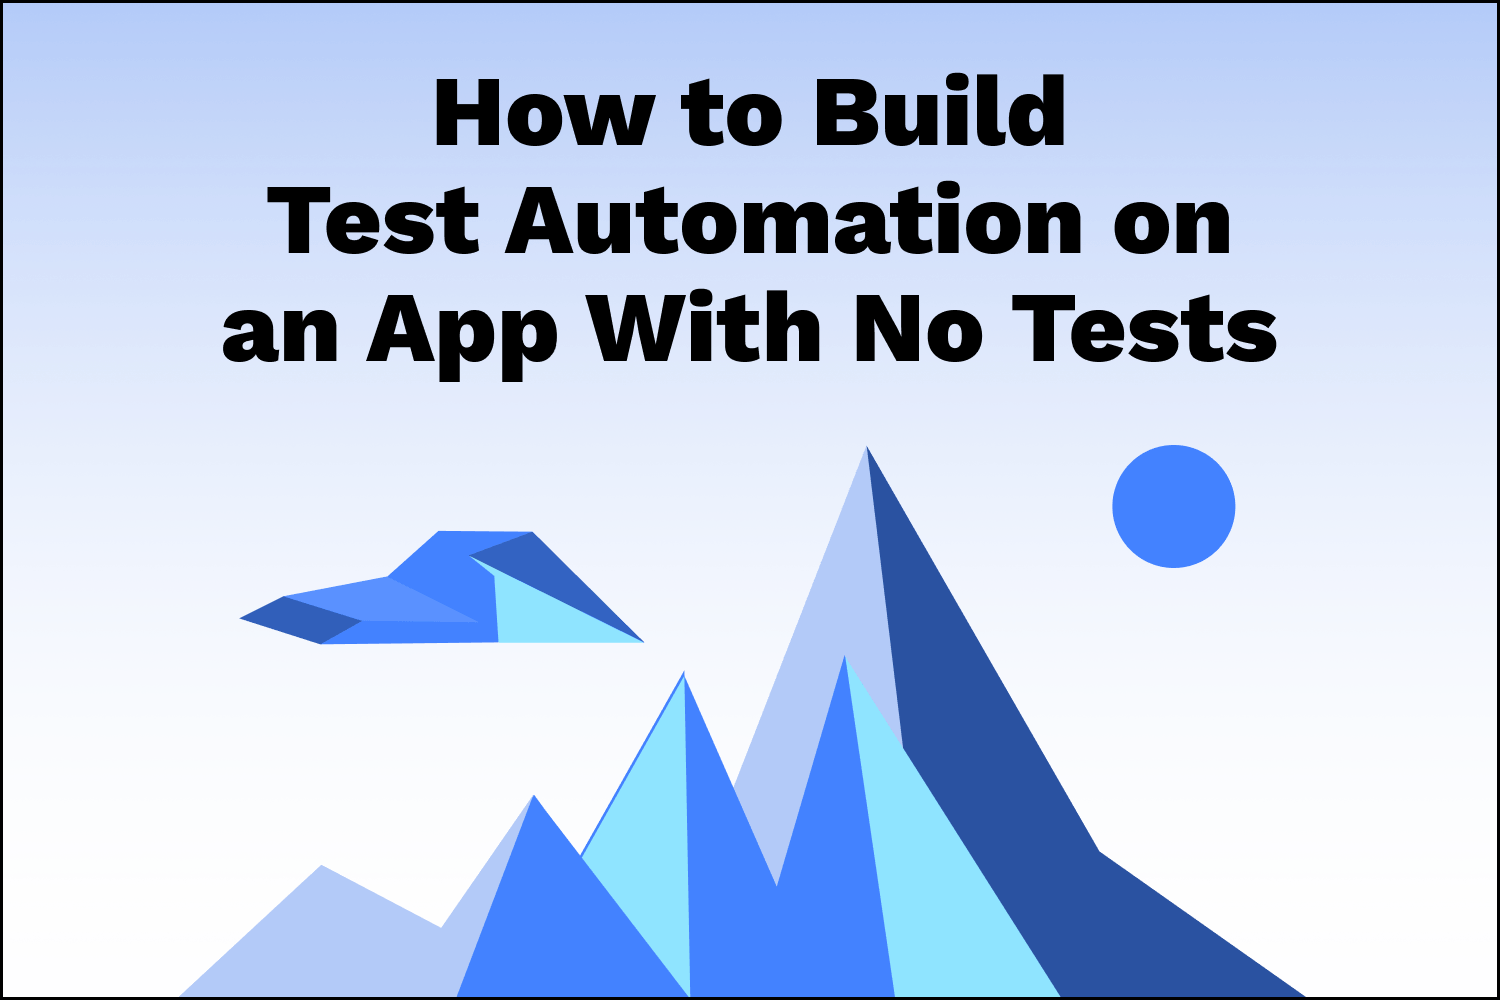 How to Build Test Automation on an App With No Tests